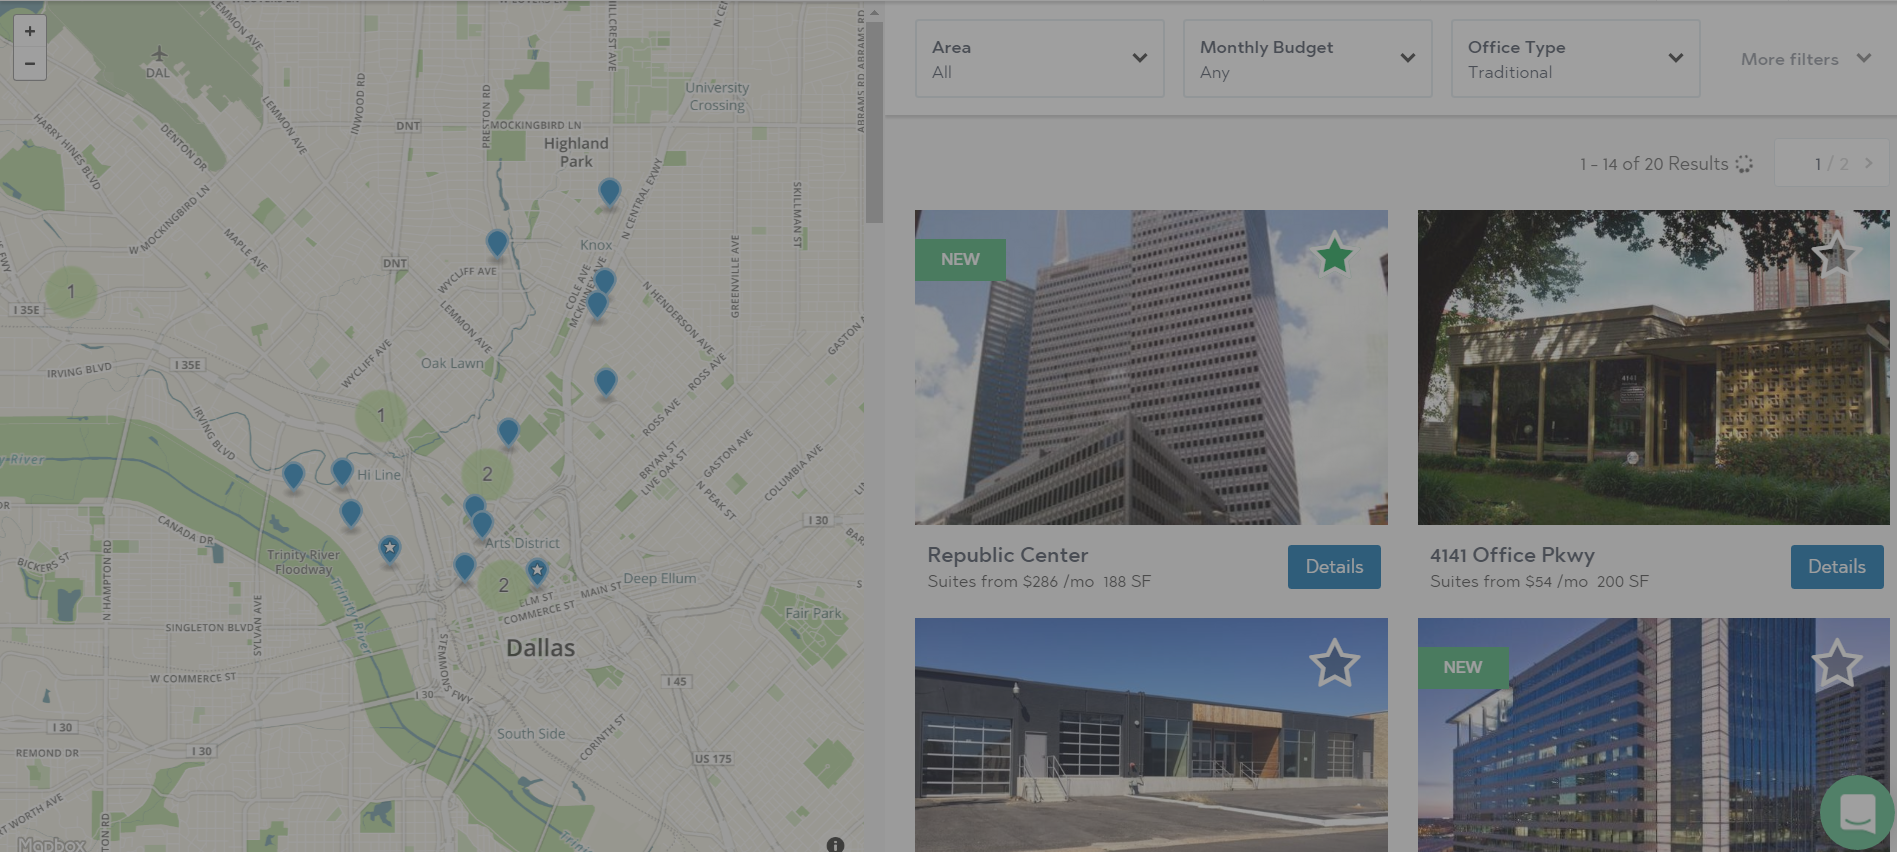 Search Dallas Office Space   TenantBase-1.png